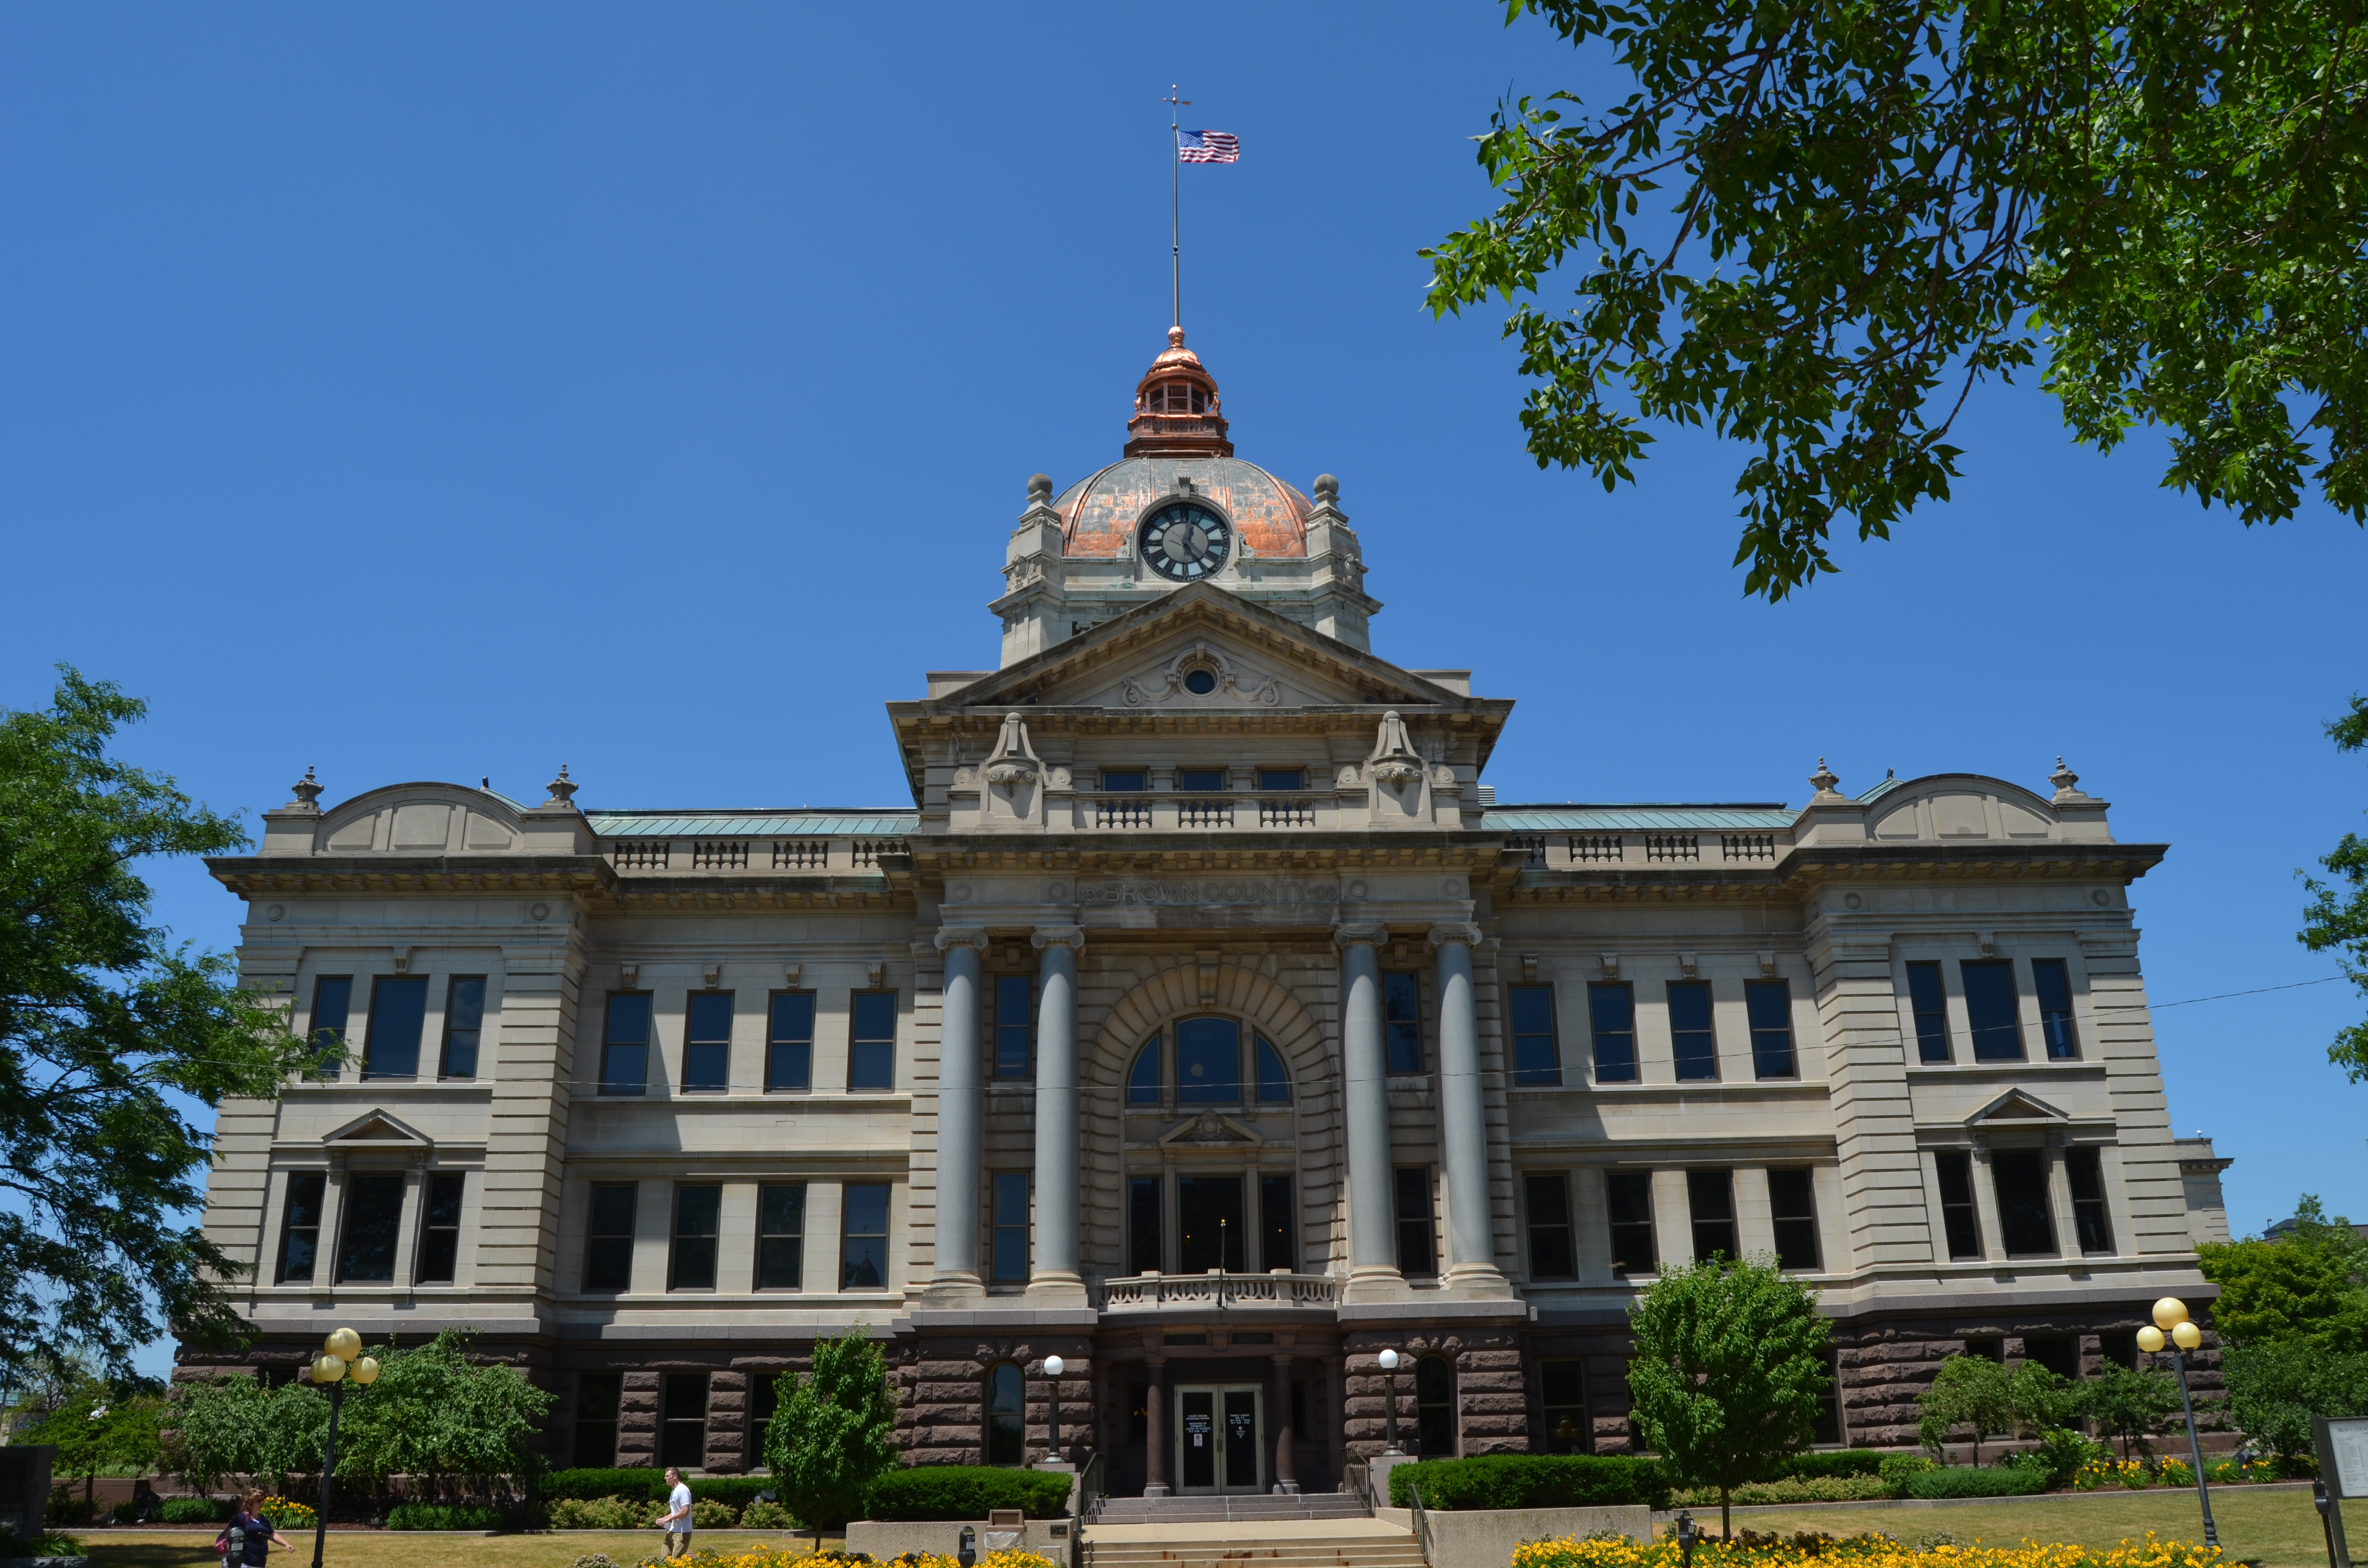 File:Brown County Court House, Green Bay, Wisconsin